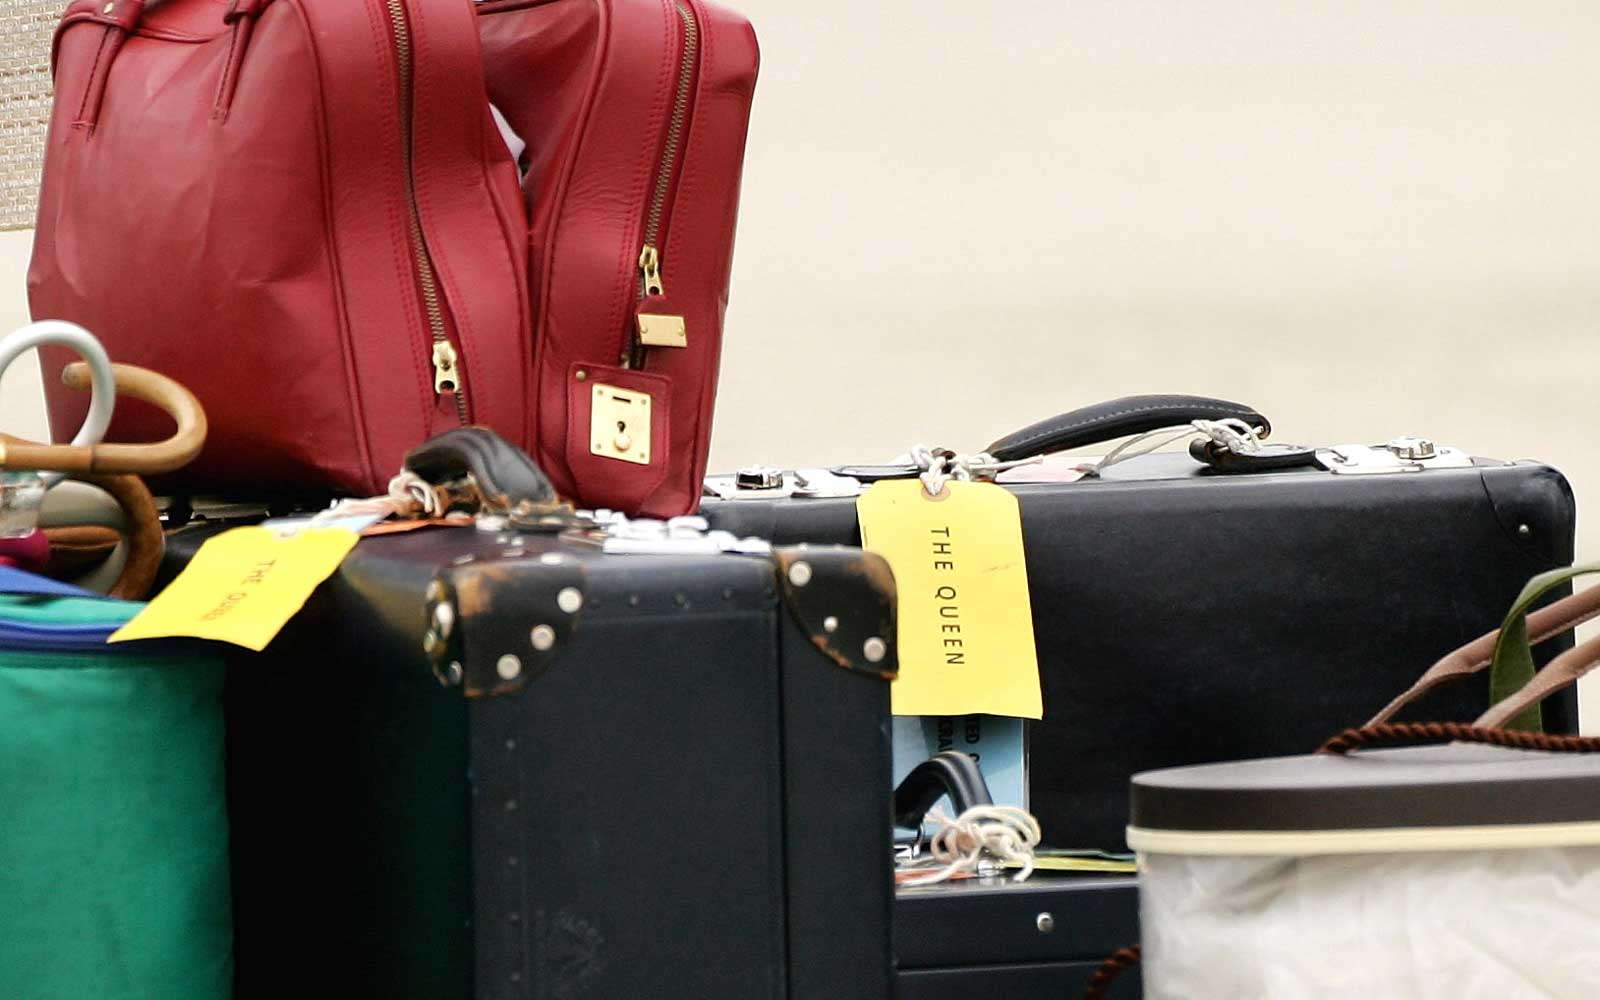 Luggage belonging to HRH Queen Elizabeth II arrives at Richmond International Airport